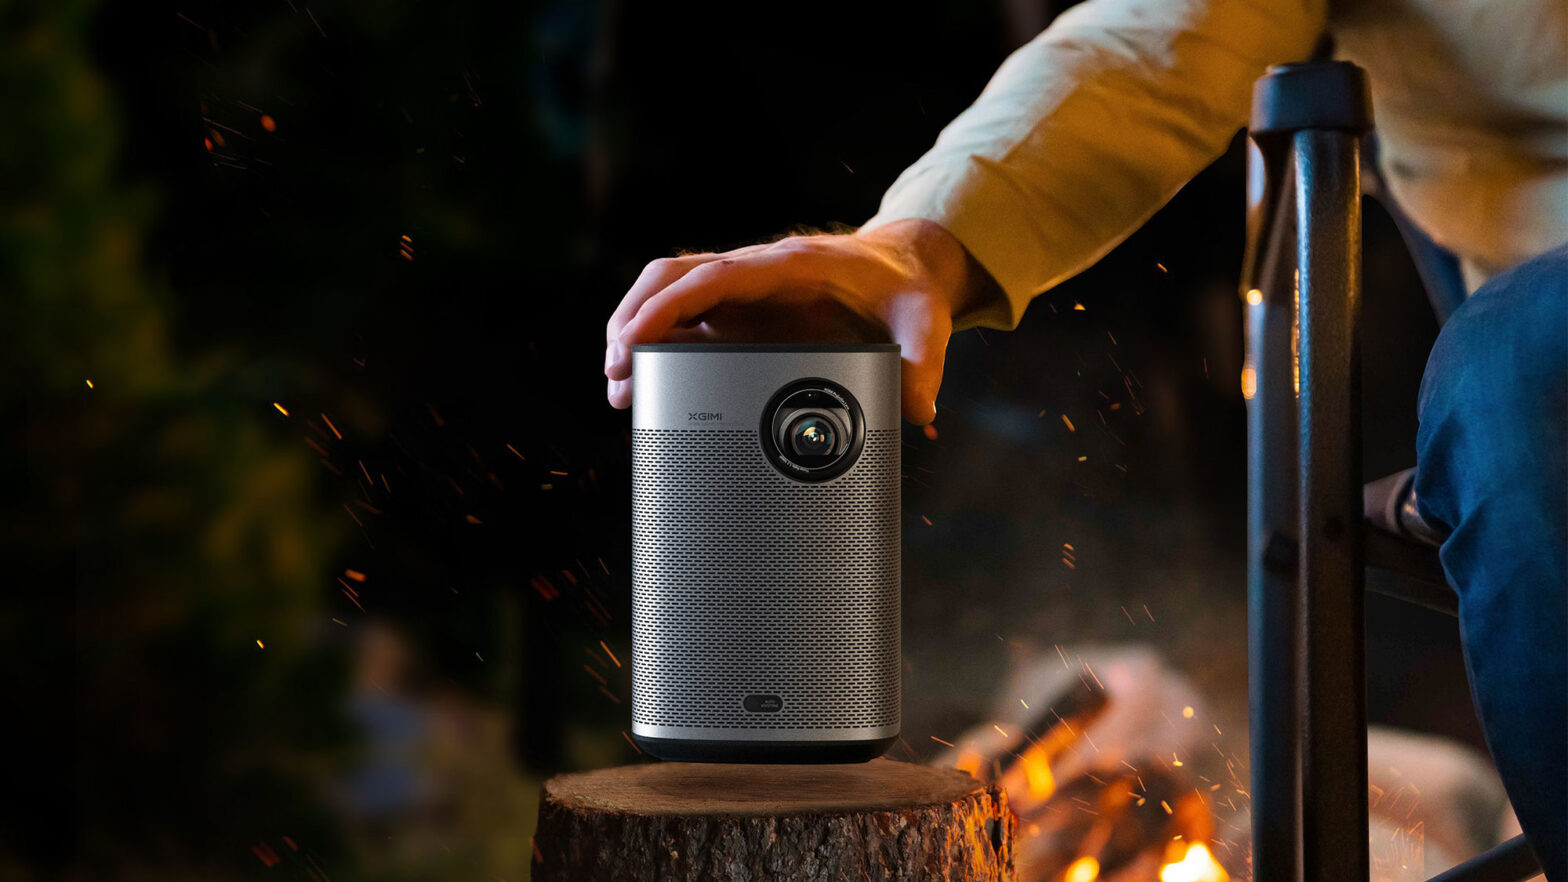 XGIMI Halo+ FHD Portable Projector